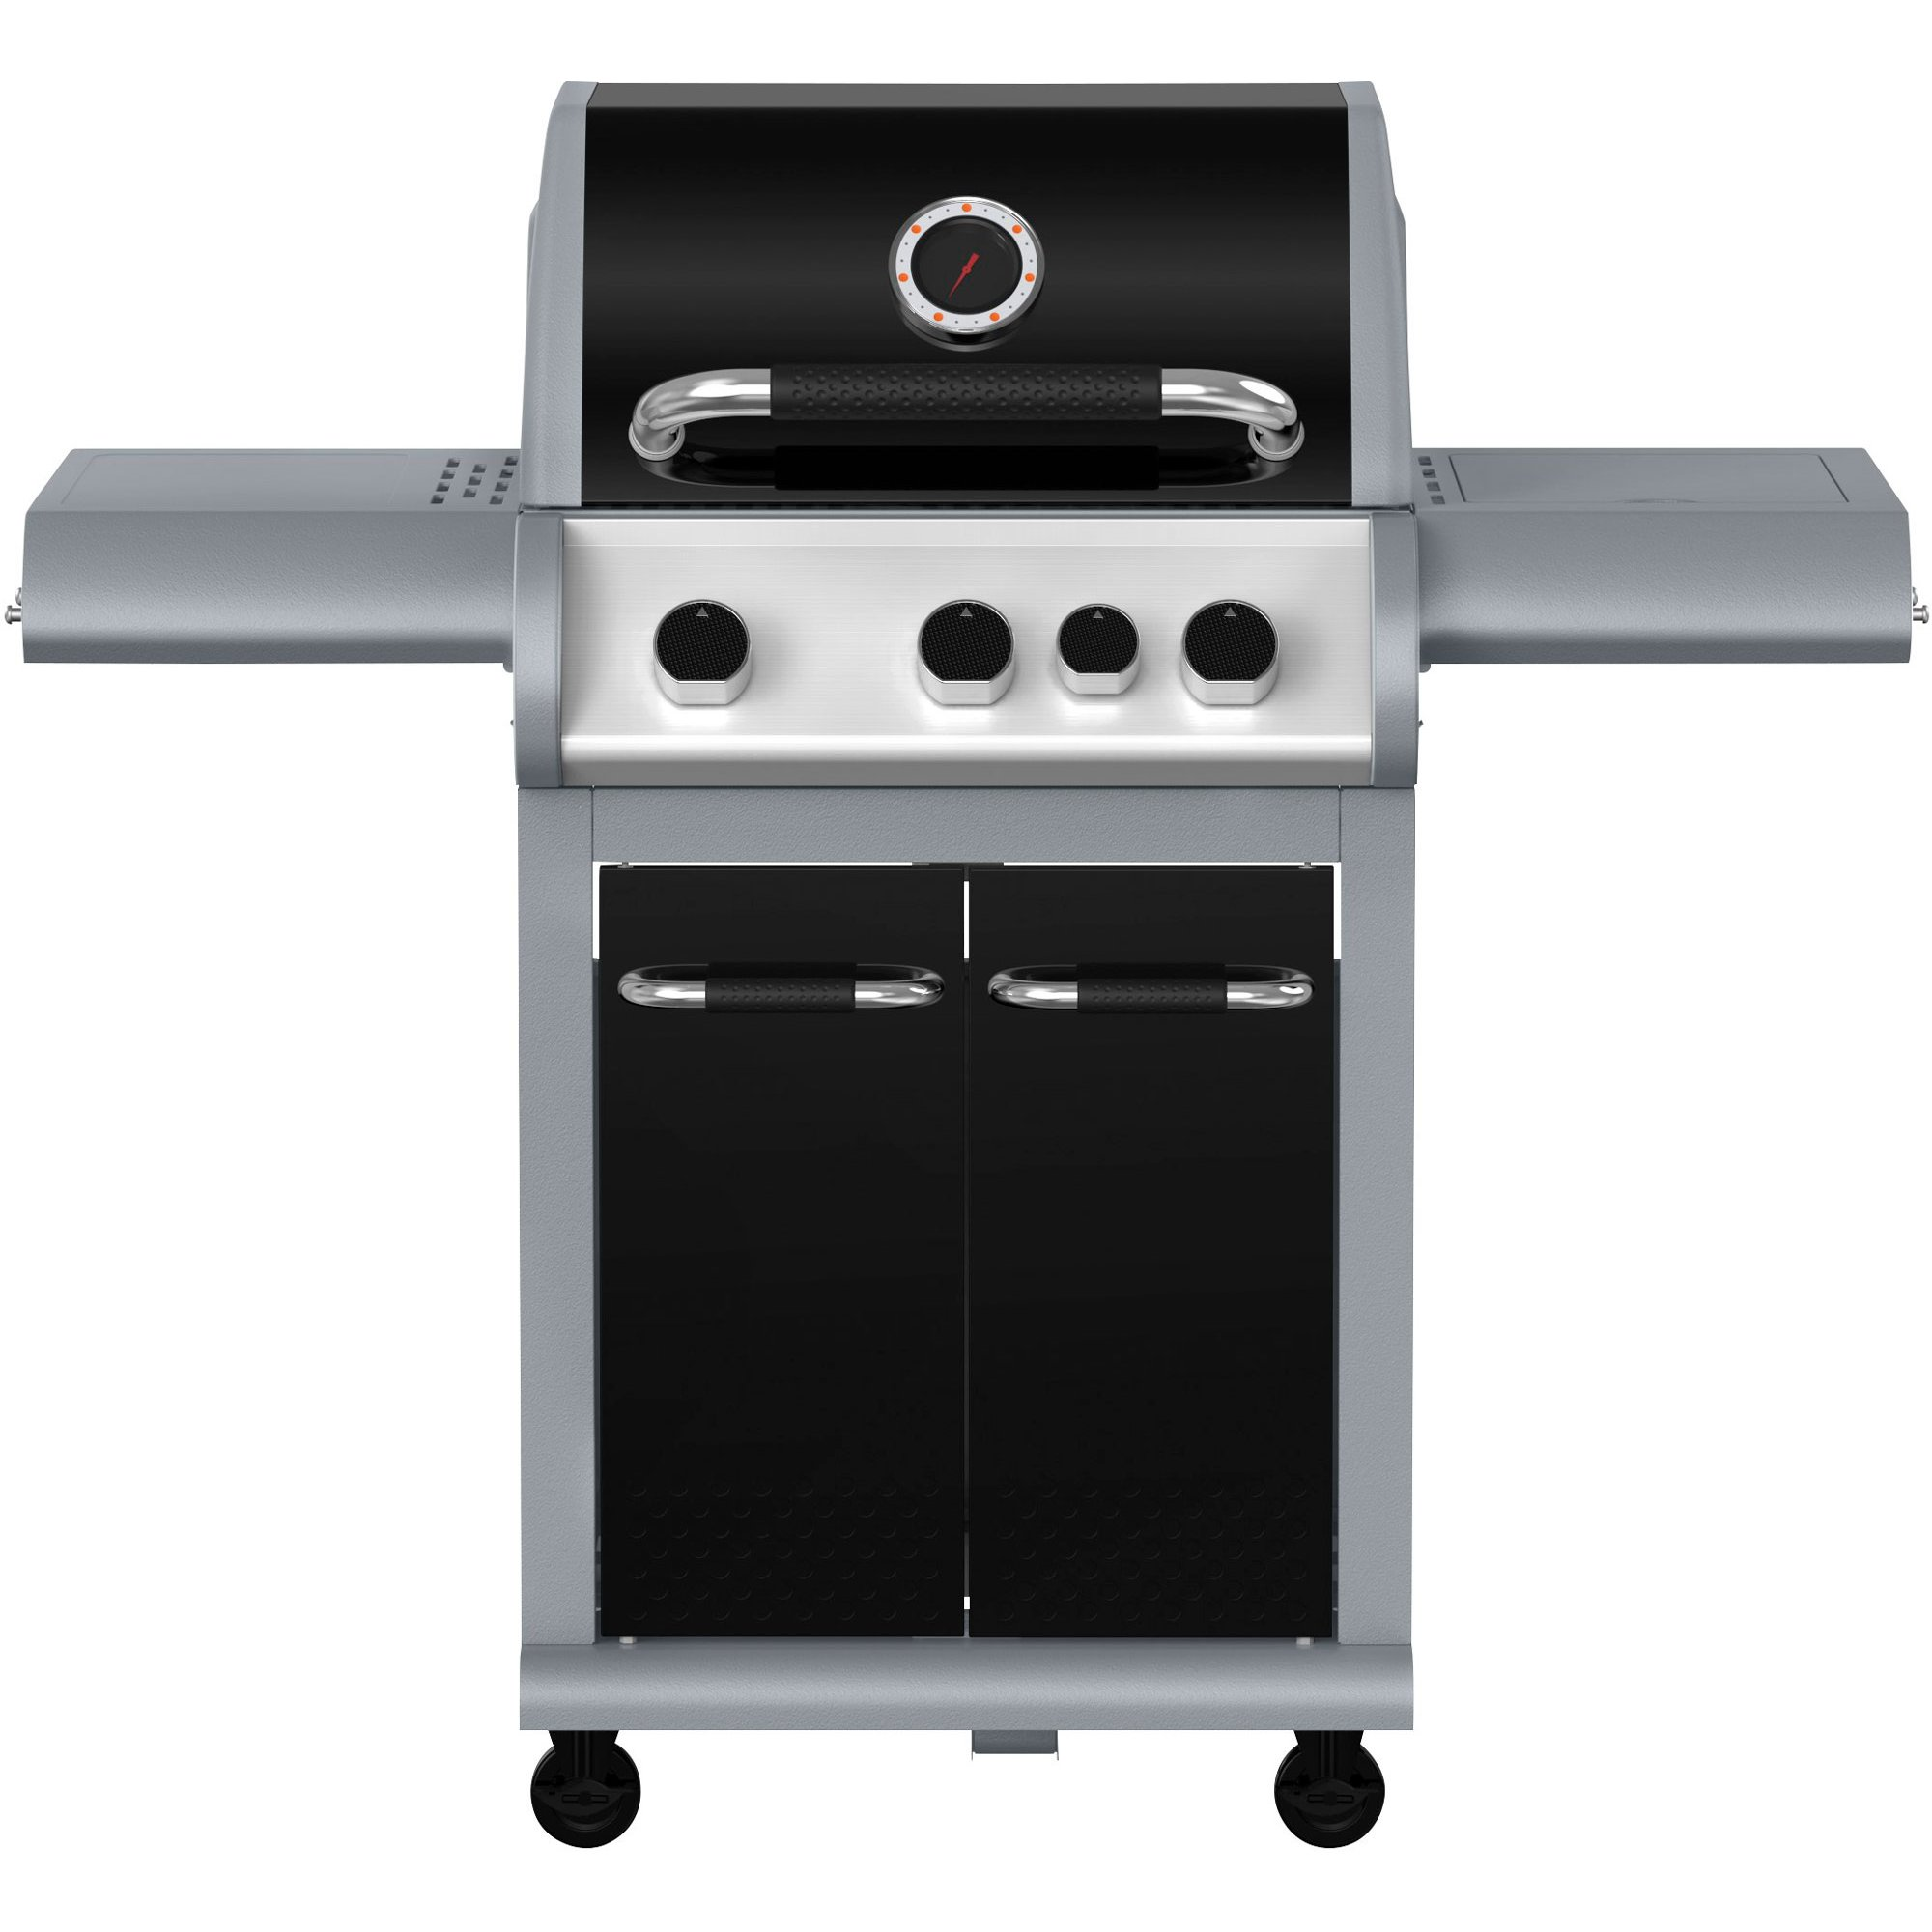 Dangrill Valhal 310 CS gasolgrill